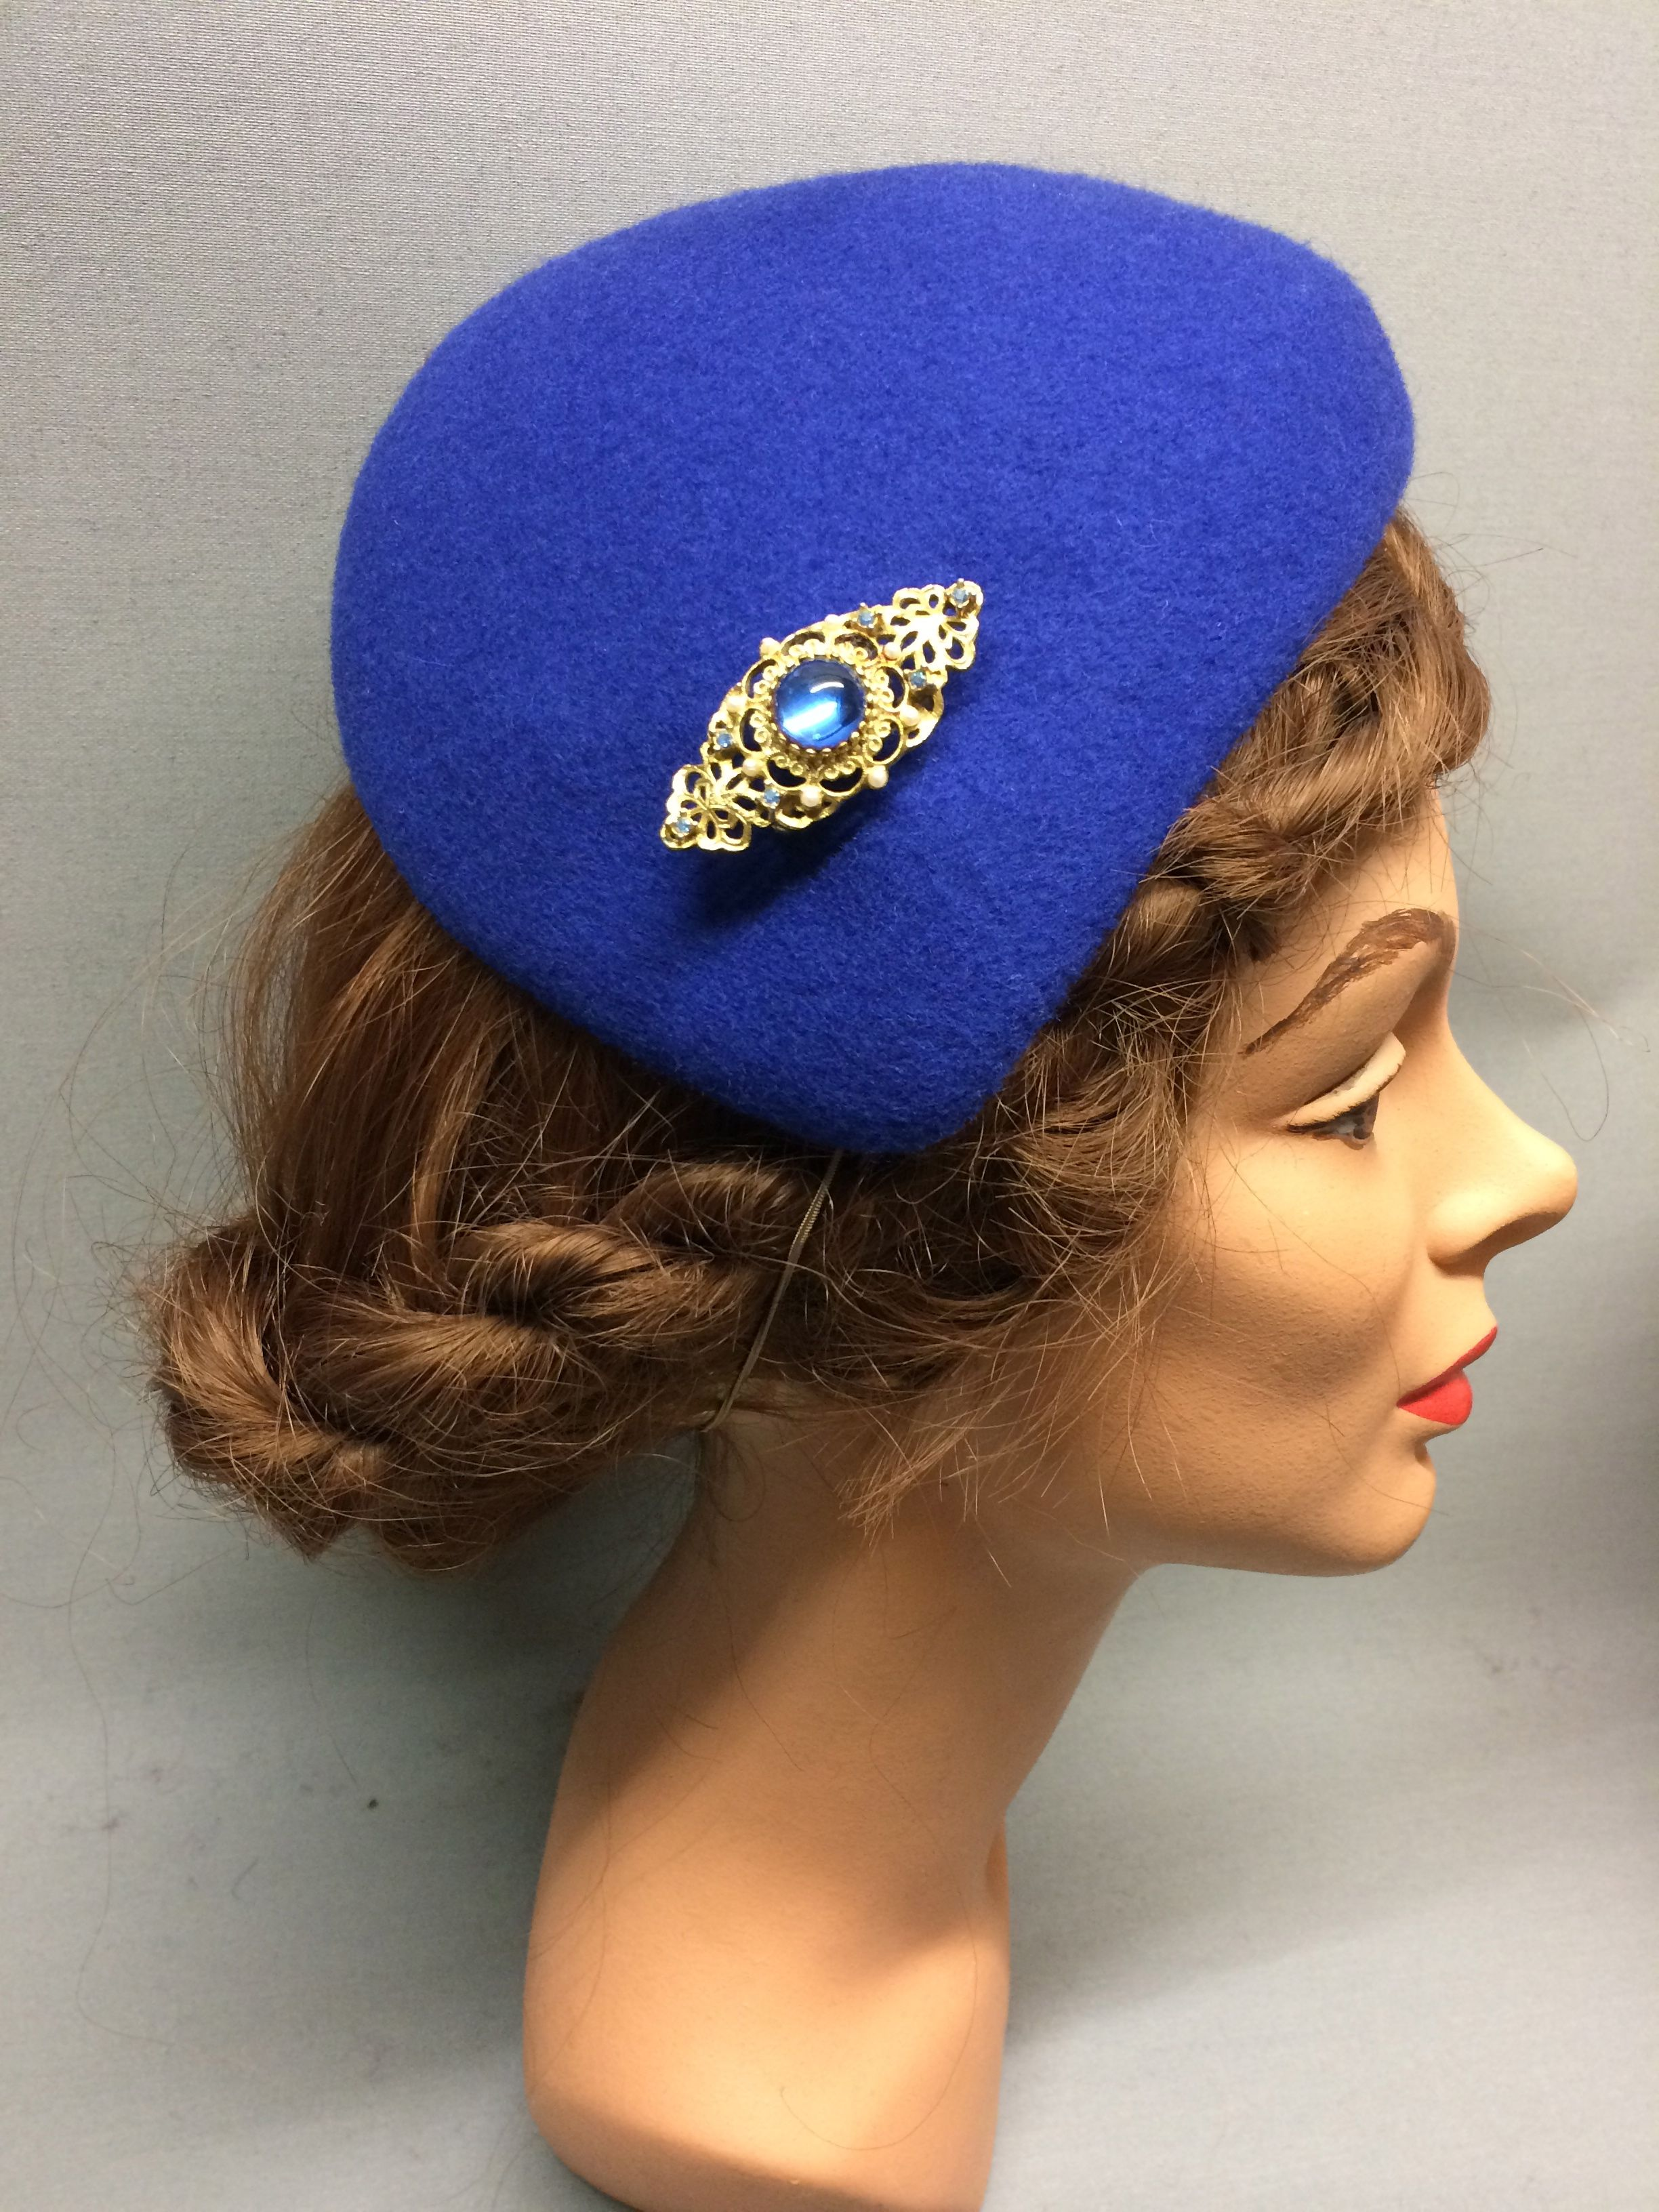 This desirable felt fascinator is the Lucille! It has an asymmetric shape and a sloping crown which forms a tear-drop shape. Trimmed with a beautiful vintage brooch. Colour: Cobalt #Fabhatrix #Edinburgh #Grassmarket #felt #fascinator #occasion